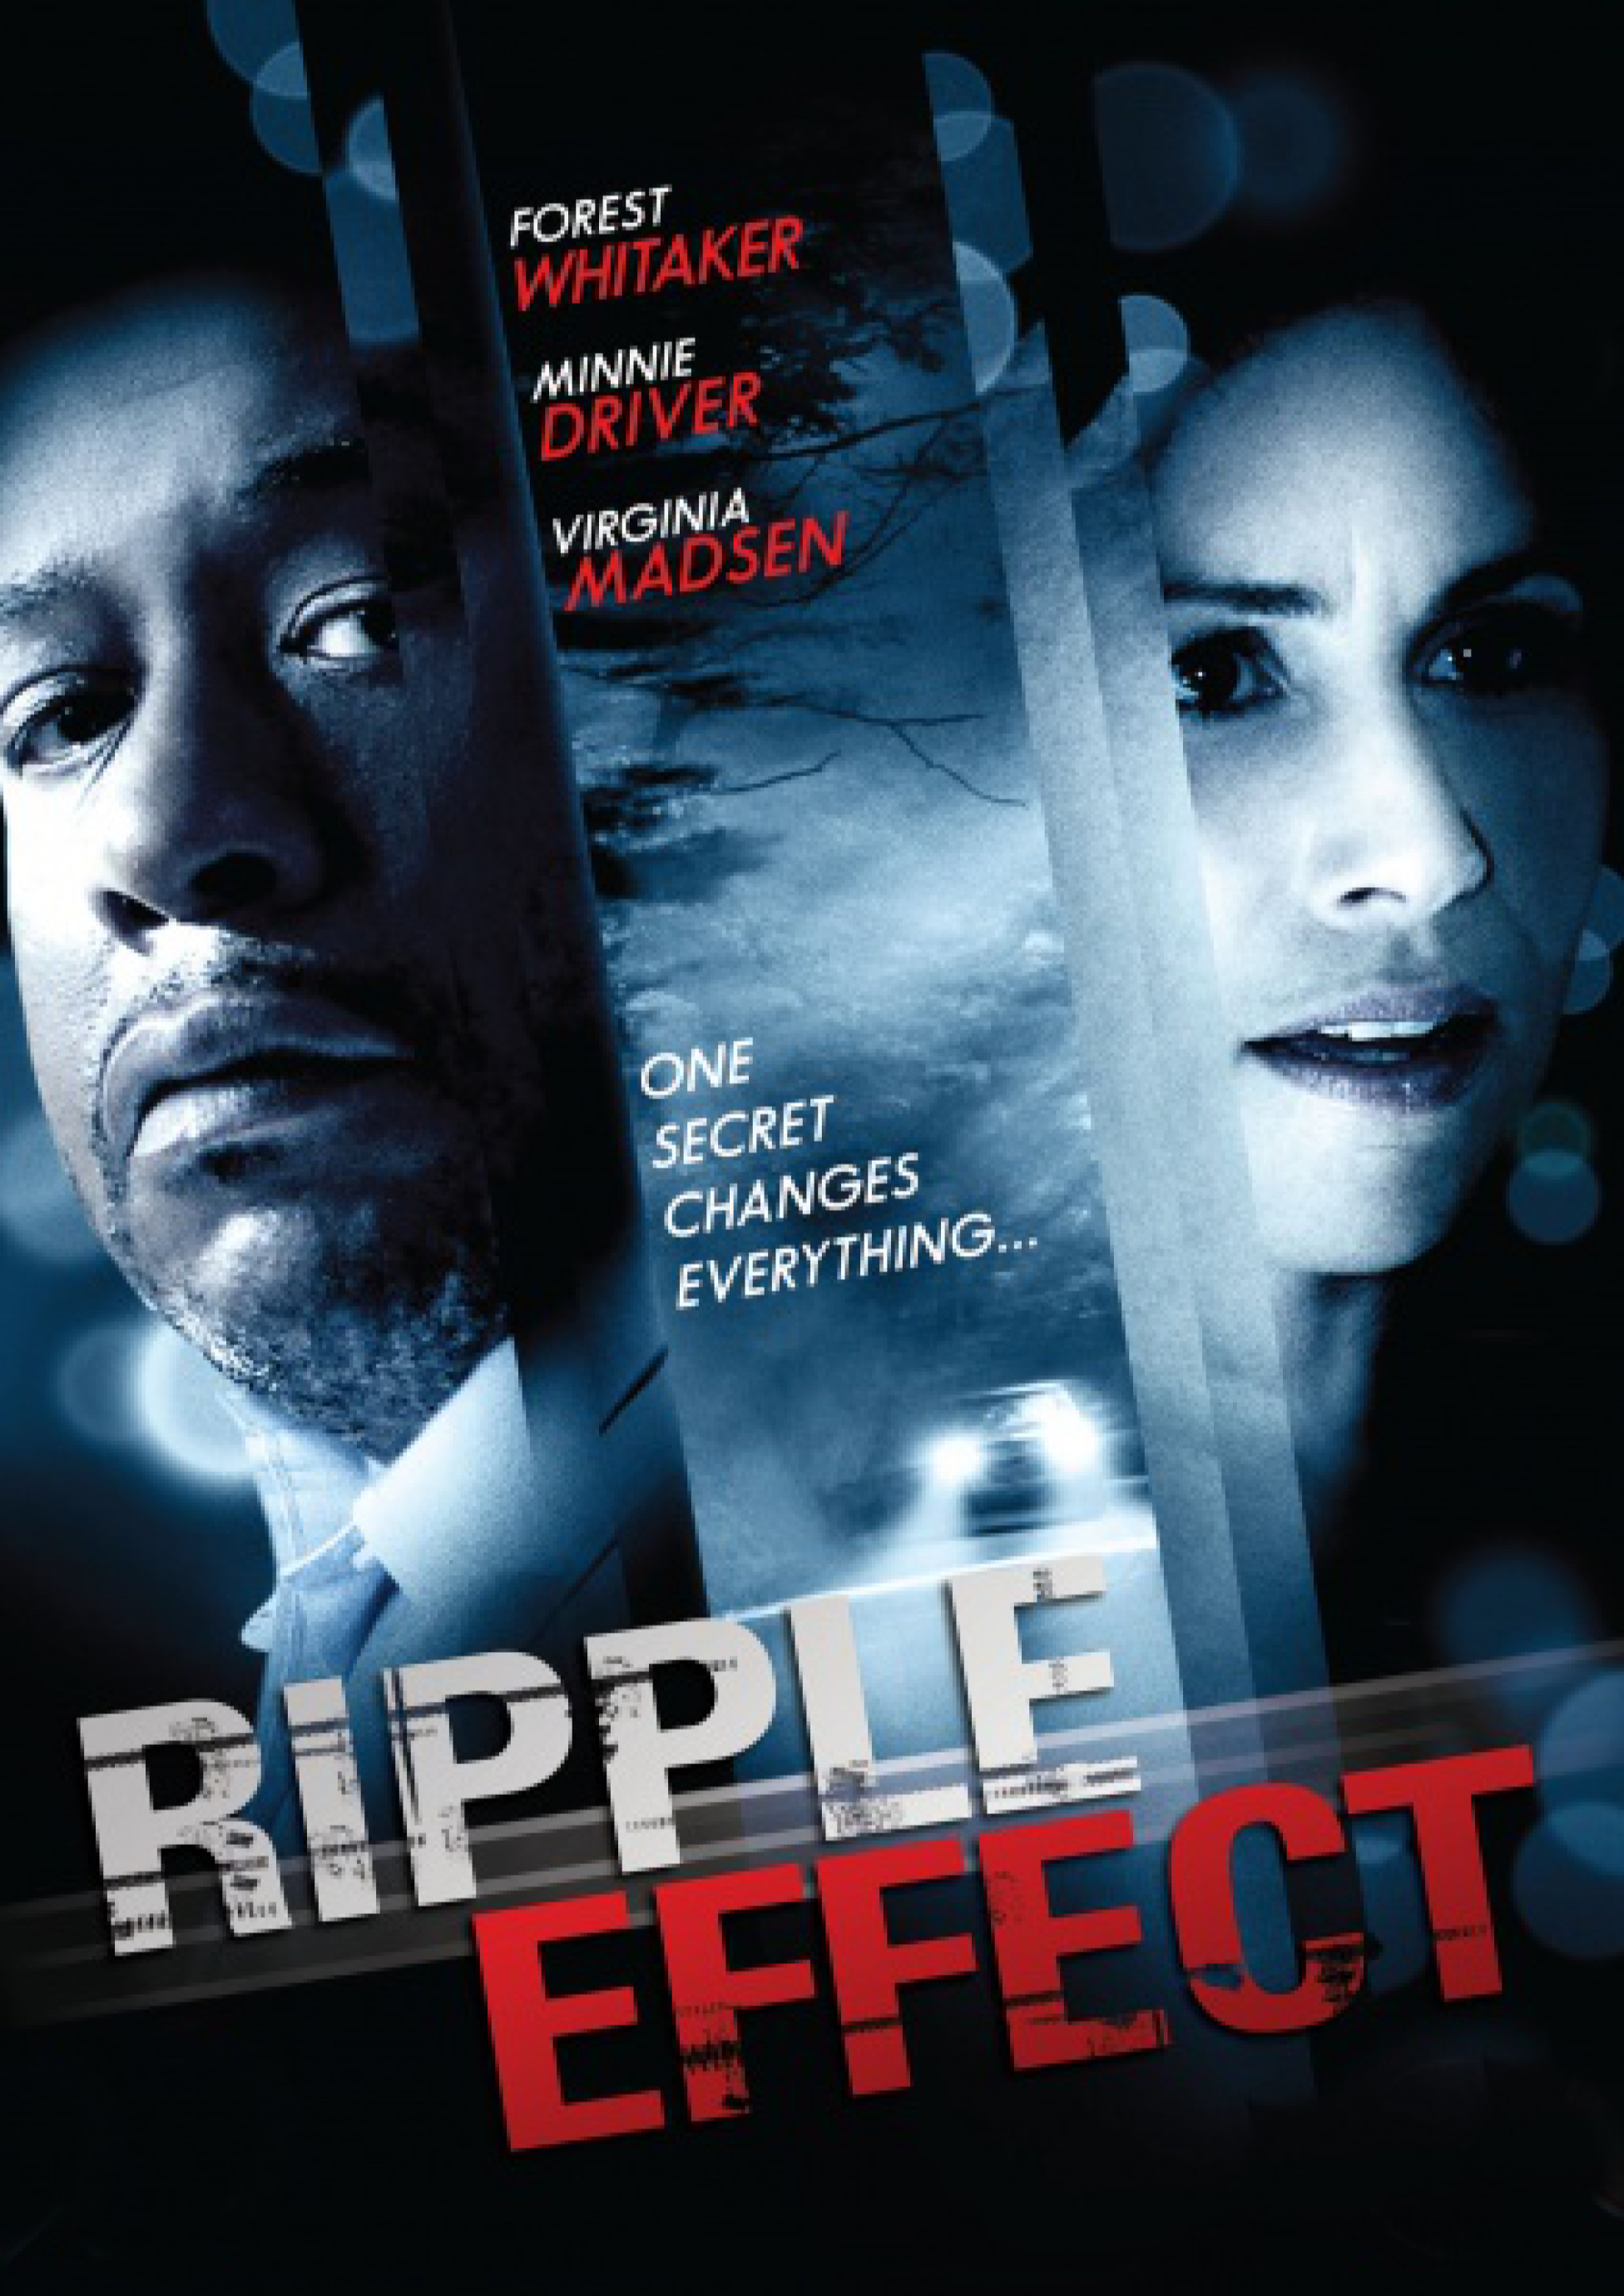 Ripple Effect - Score Catalog Artwork V1_crop.jpg